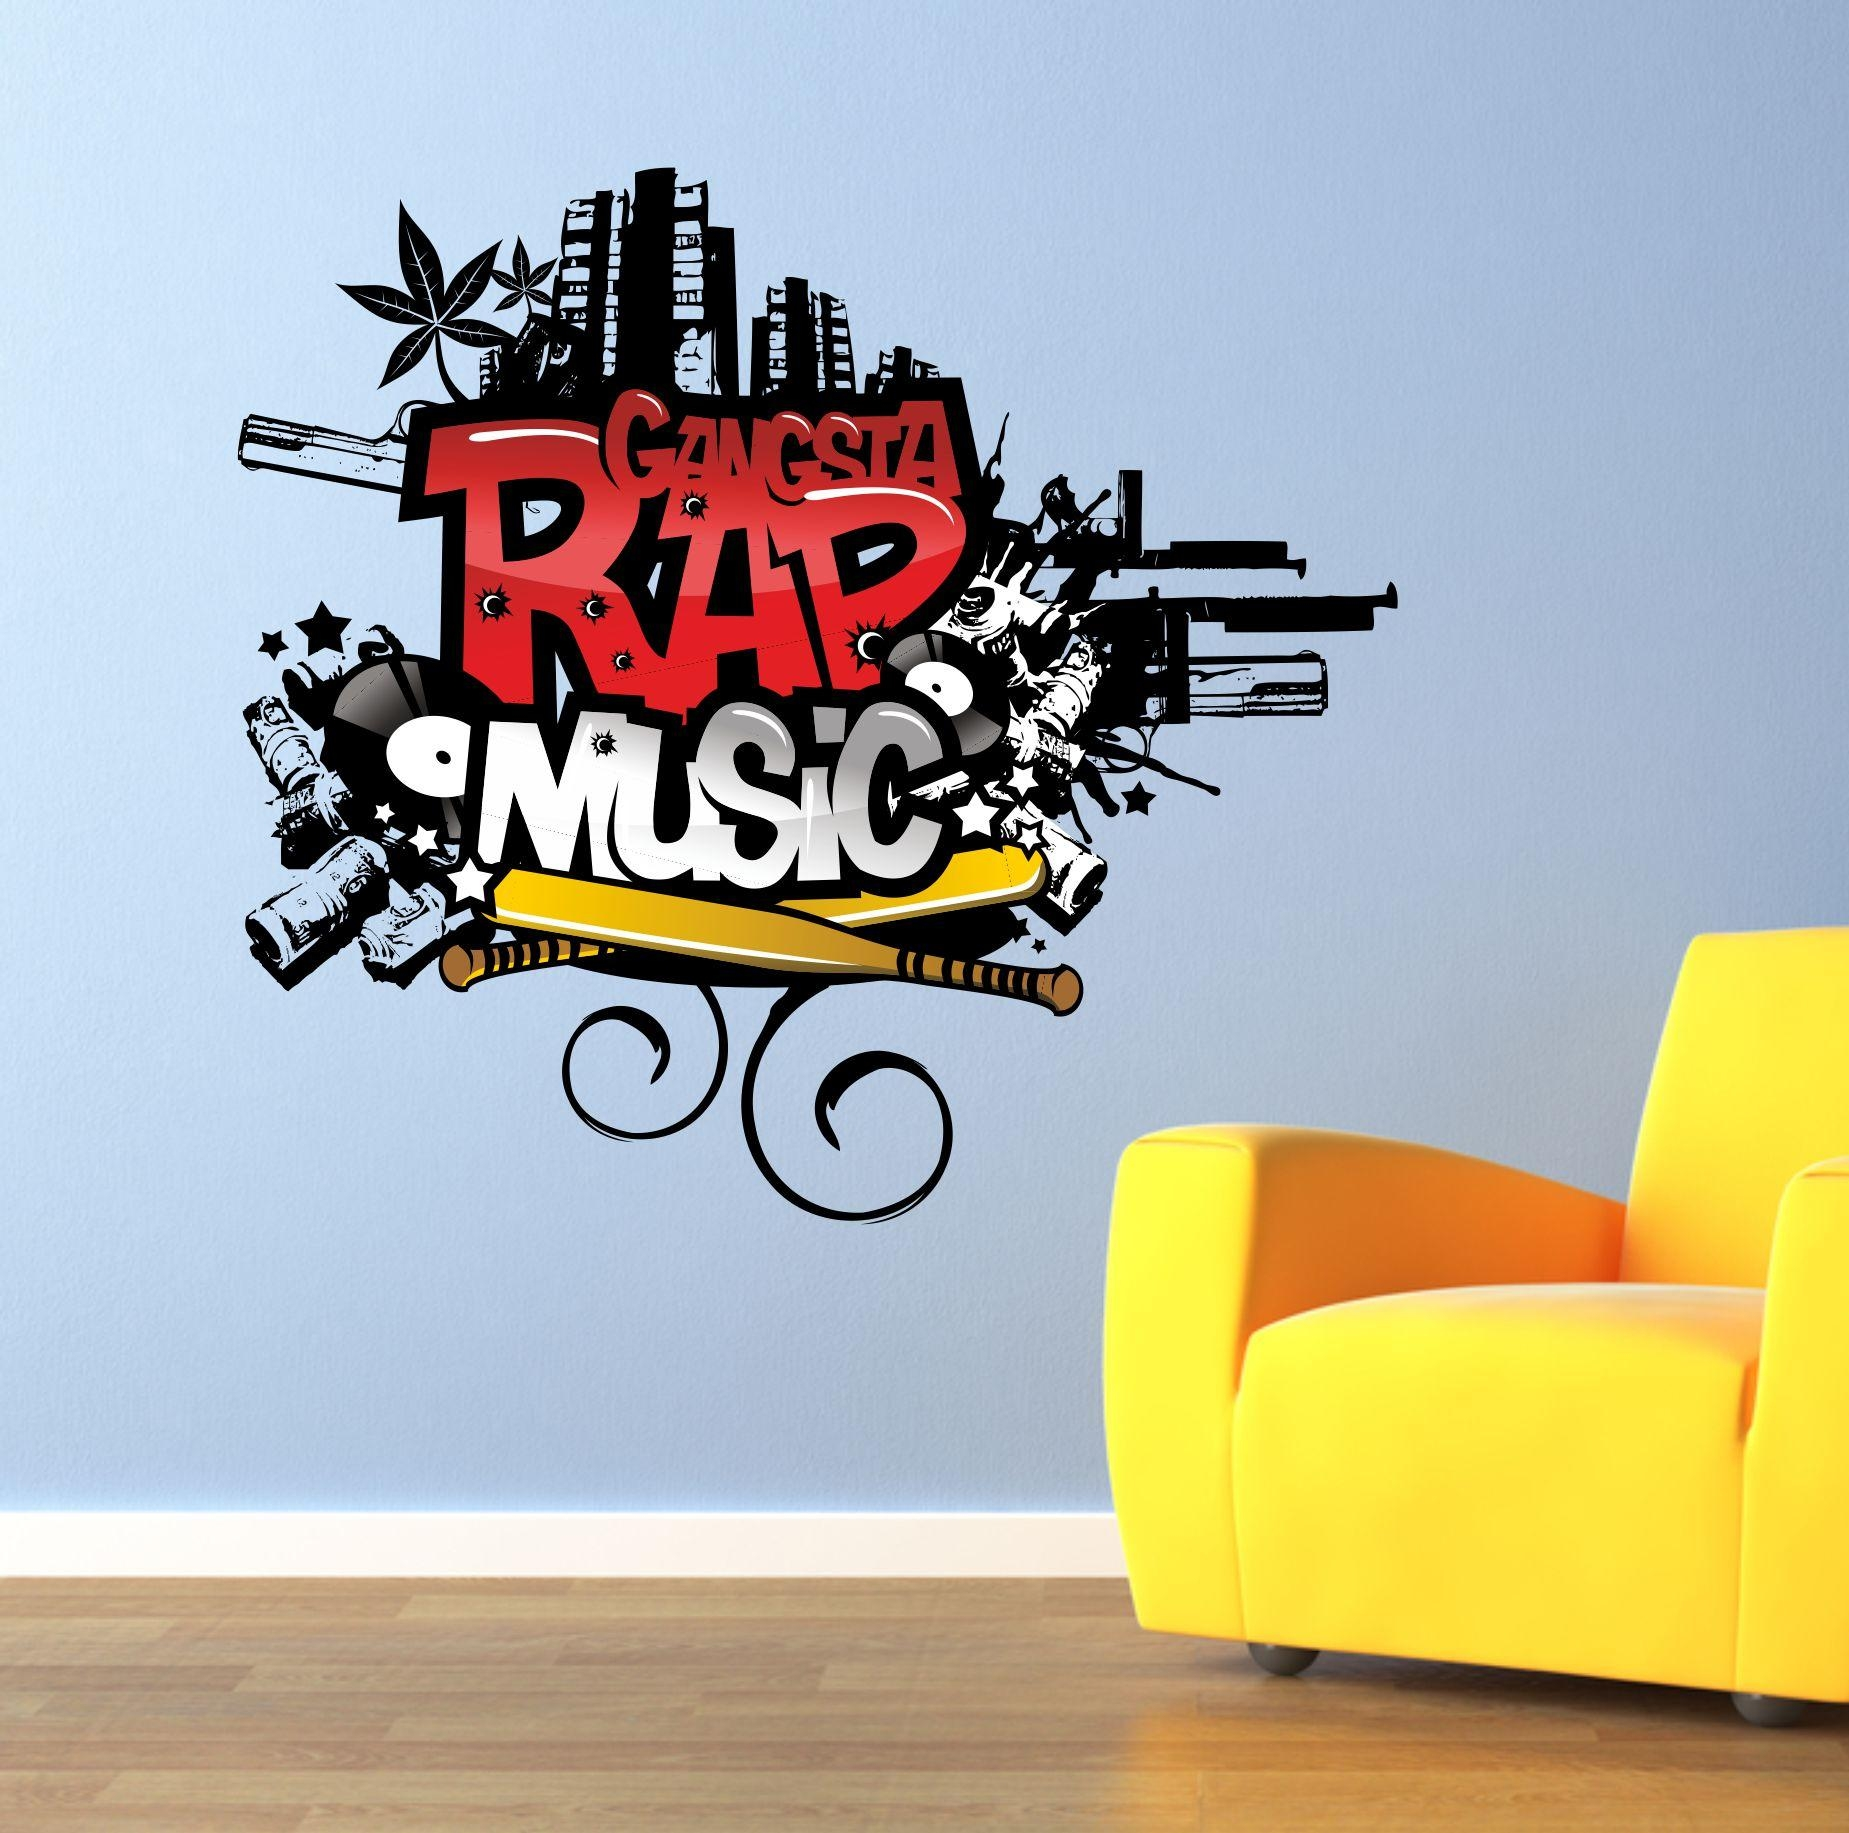 The Grafix Studio | Gangsta Rap Music Graffiti Wall Art Sticker With Graffiti Wall Art Stickers (Image 17 of 20)